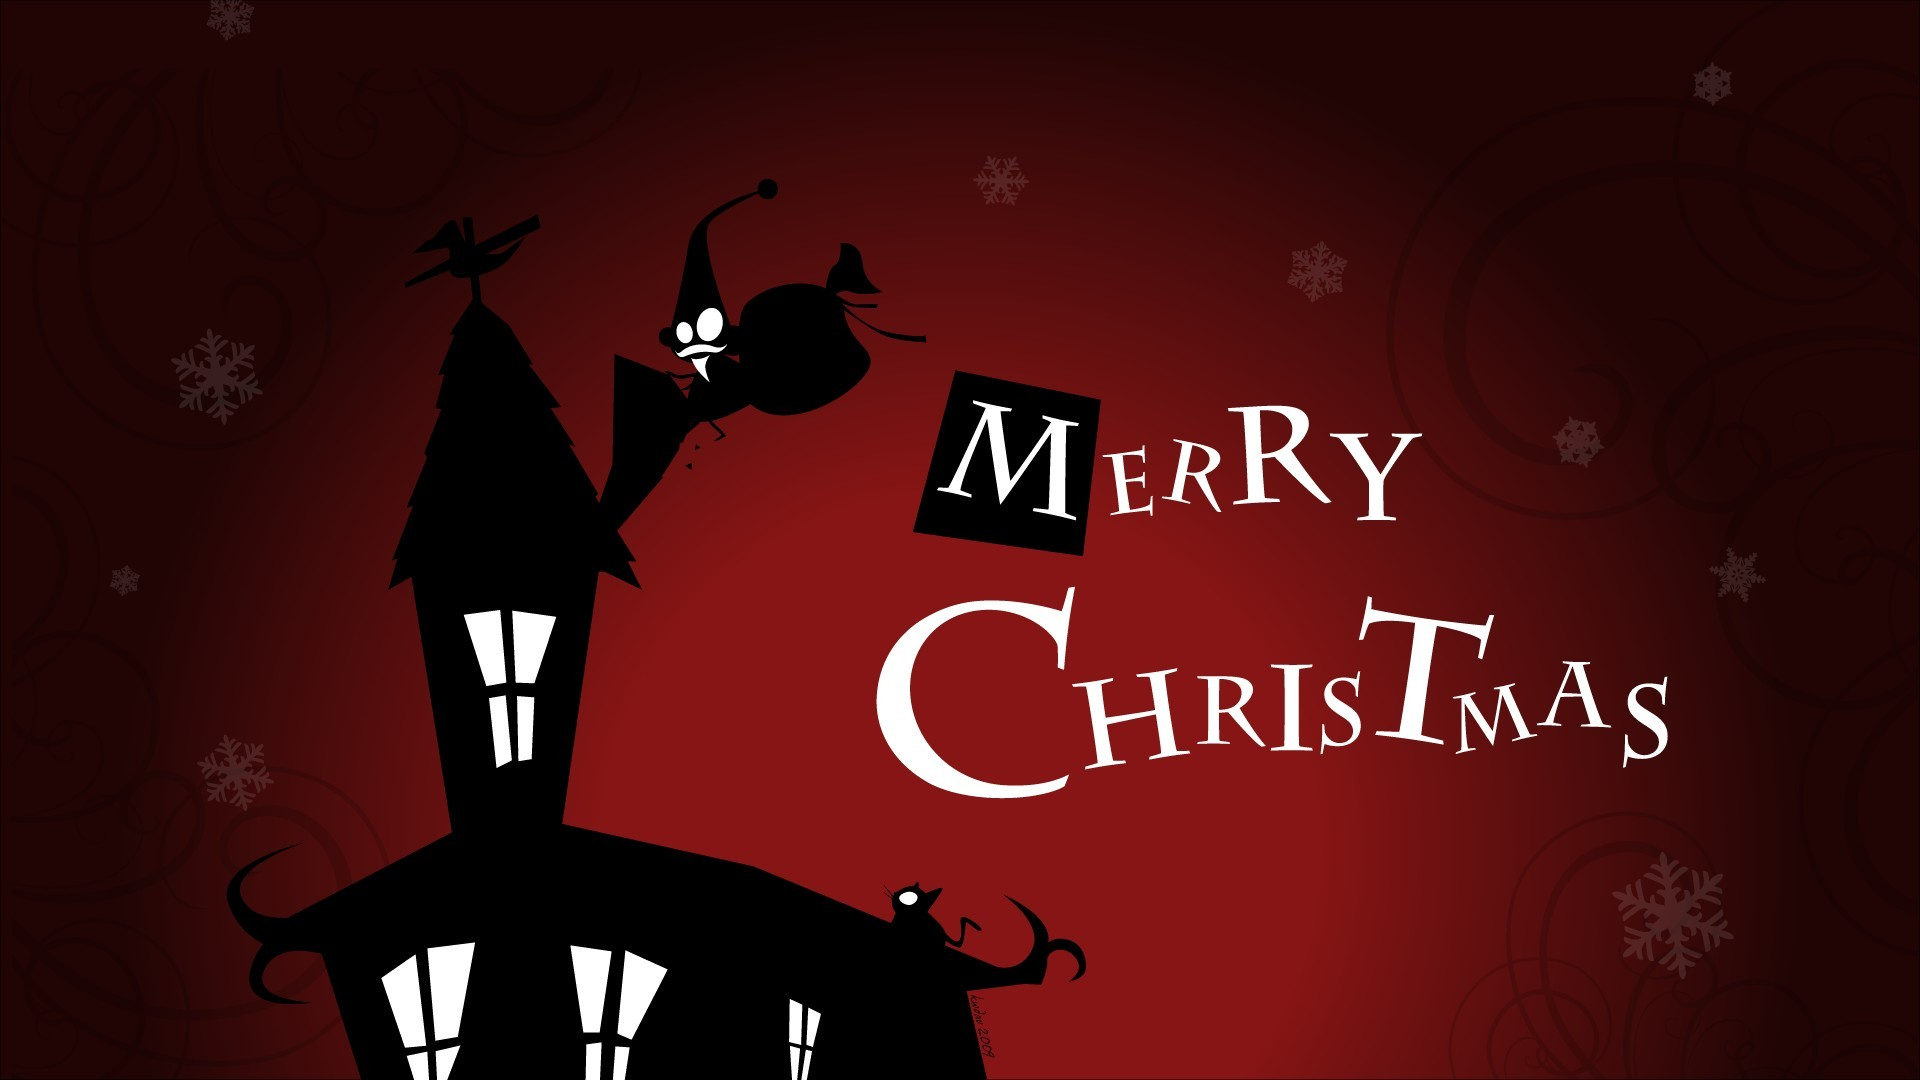 Merry Christmas Cartoon Images HD Wallpapers